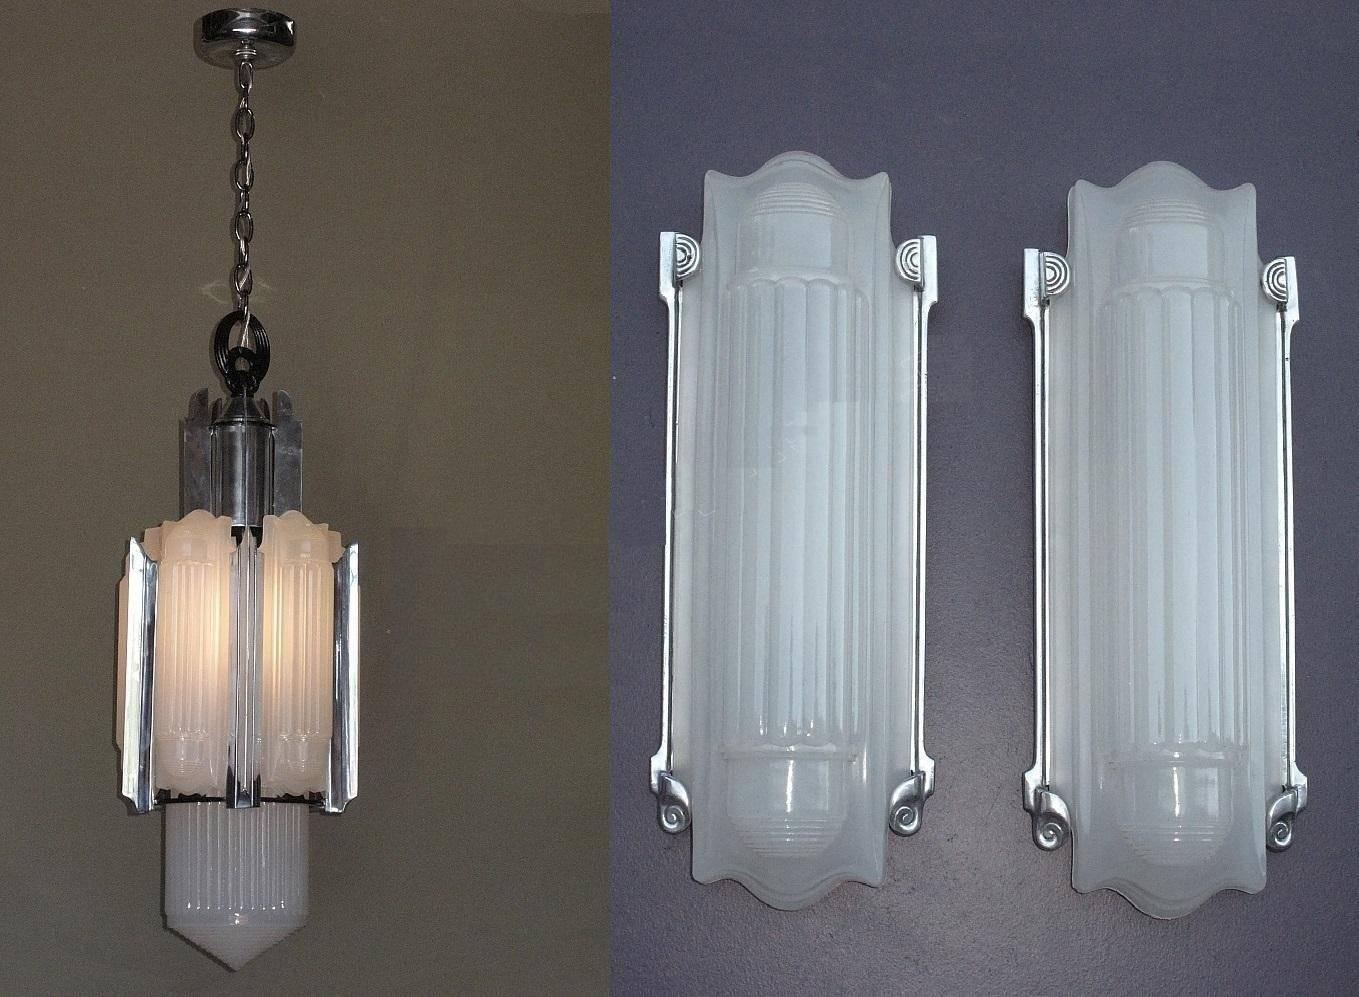 Home Theater Wall Sconces Lighting : Large Elegant Art Deco Wall Sconces Home Theater at 1stdibs